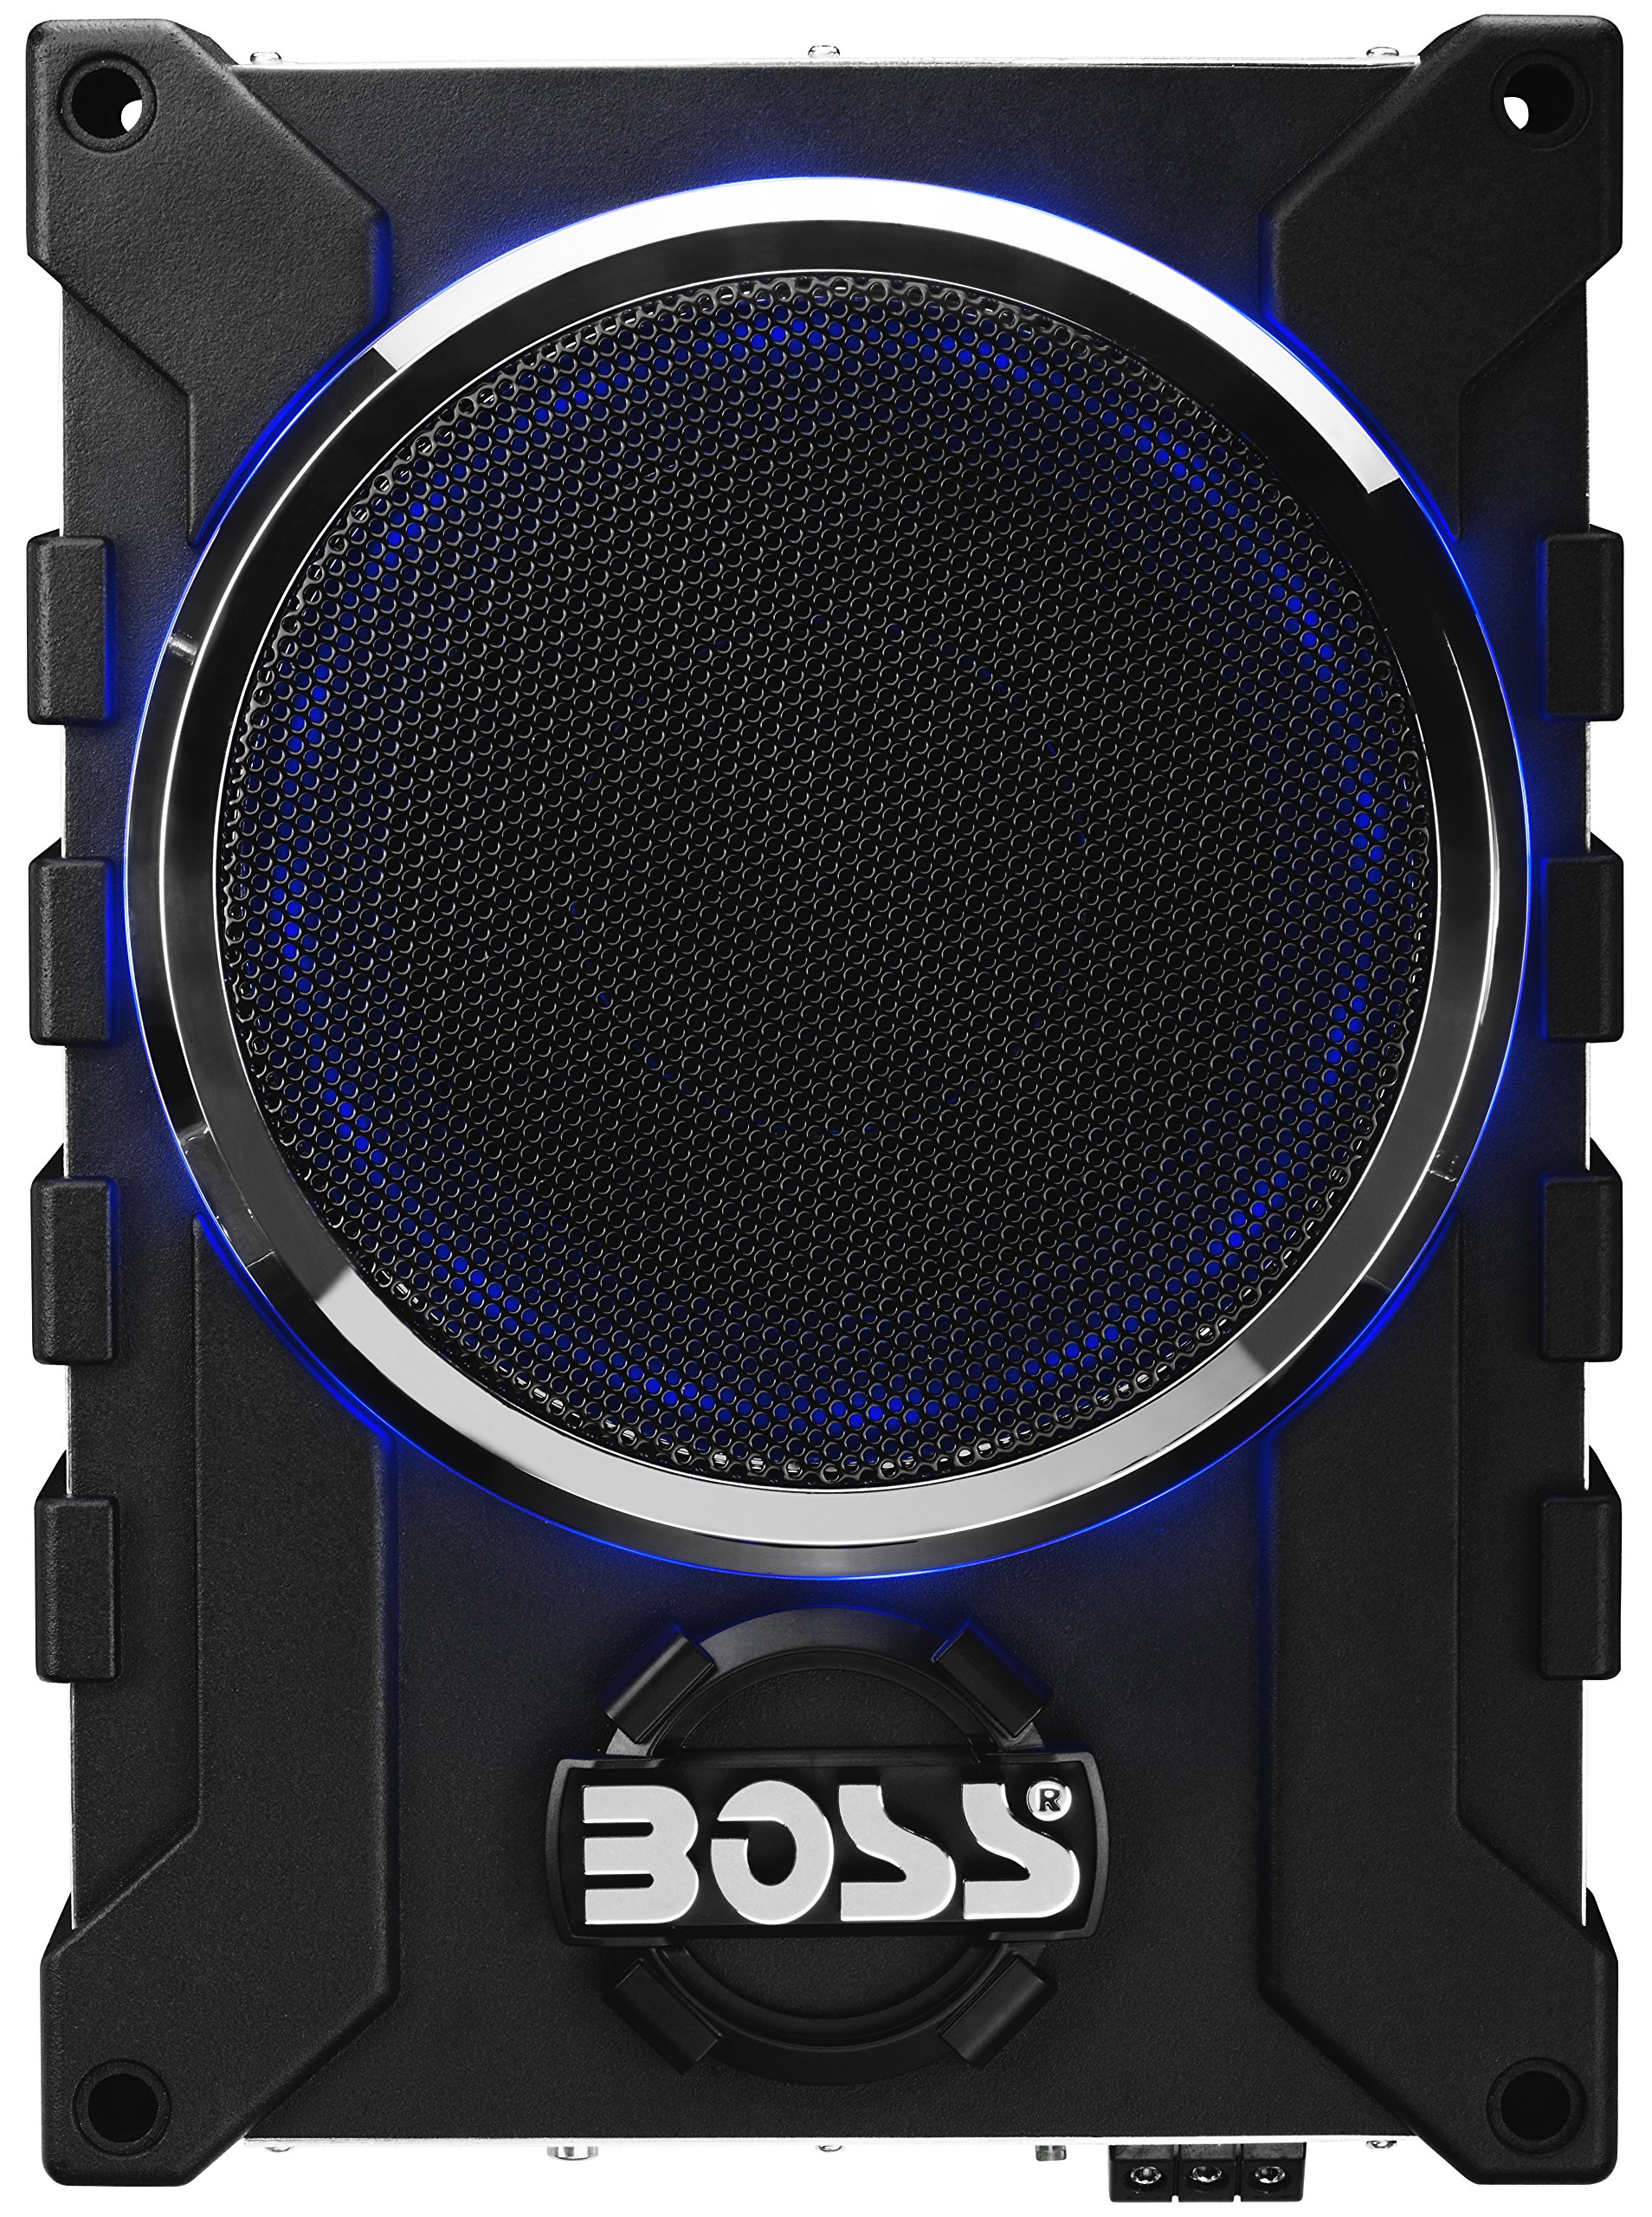 BOSS Audio BASS1000 1000 Watt Low Profile Amplified 8 Inch Subwoofer with Remote Subwoofer Control by BOSS Audio (Image #5)